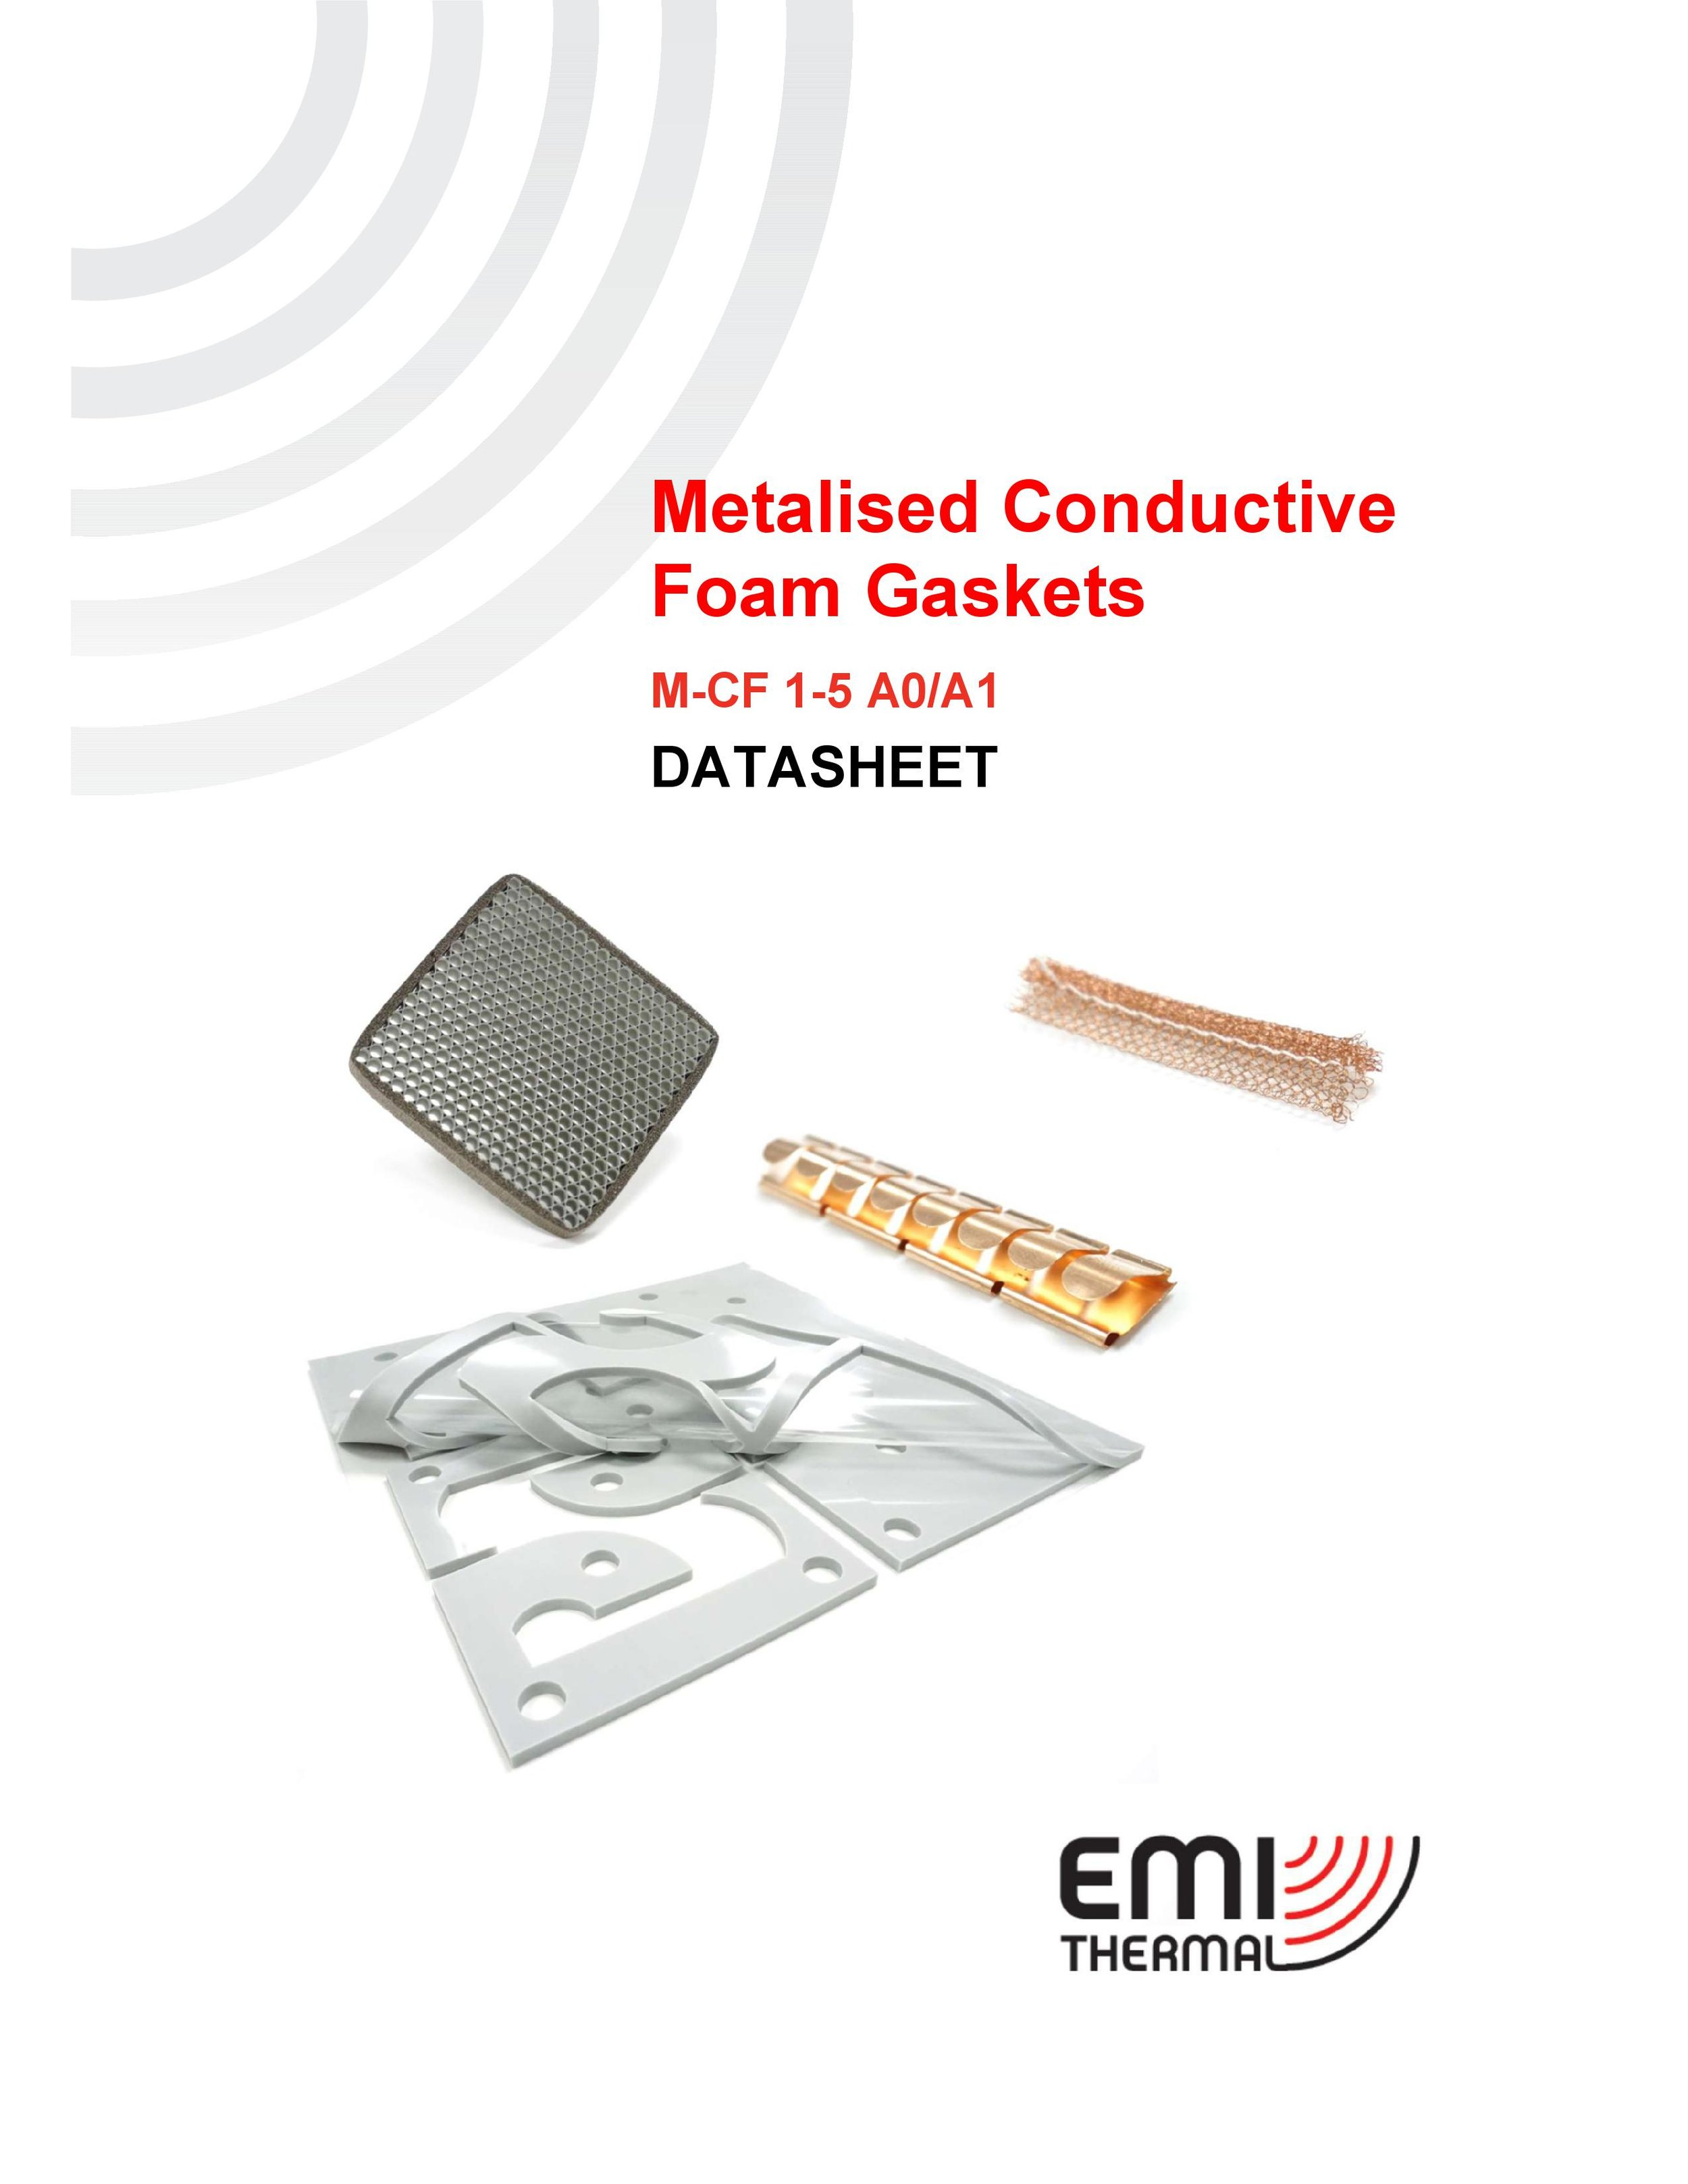 Metalised Conductive Foam.jpg